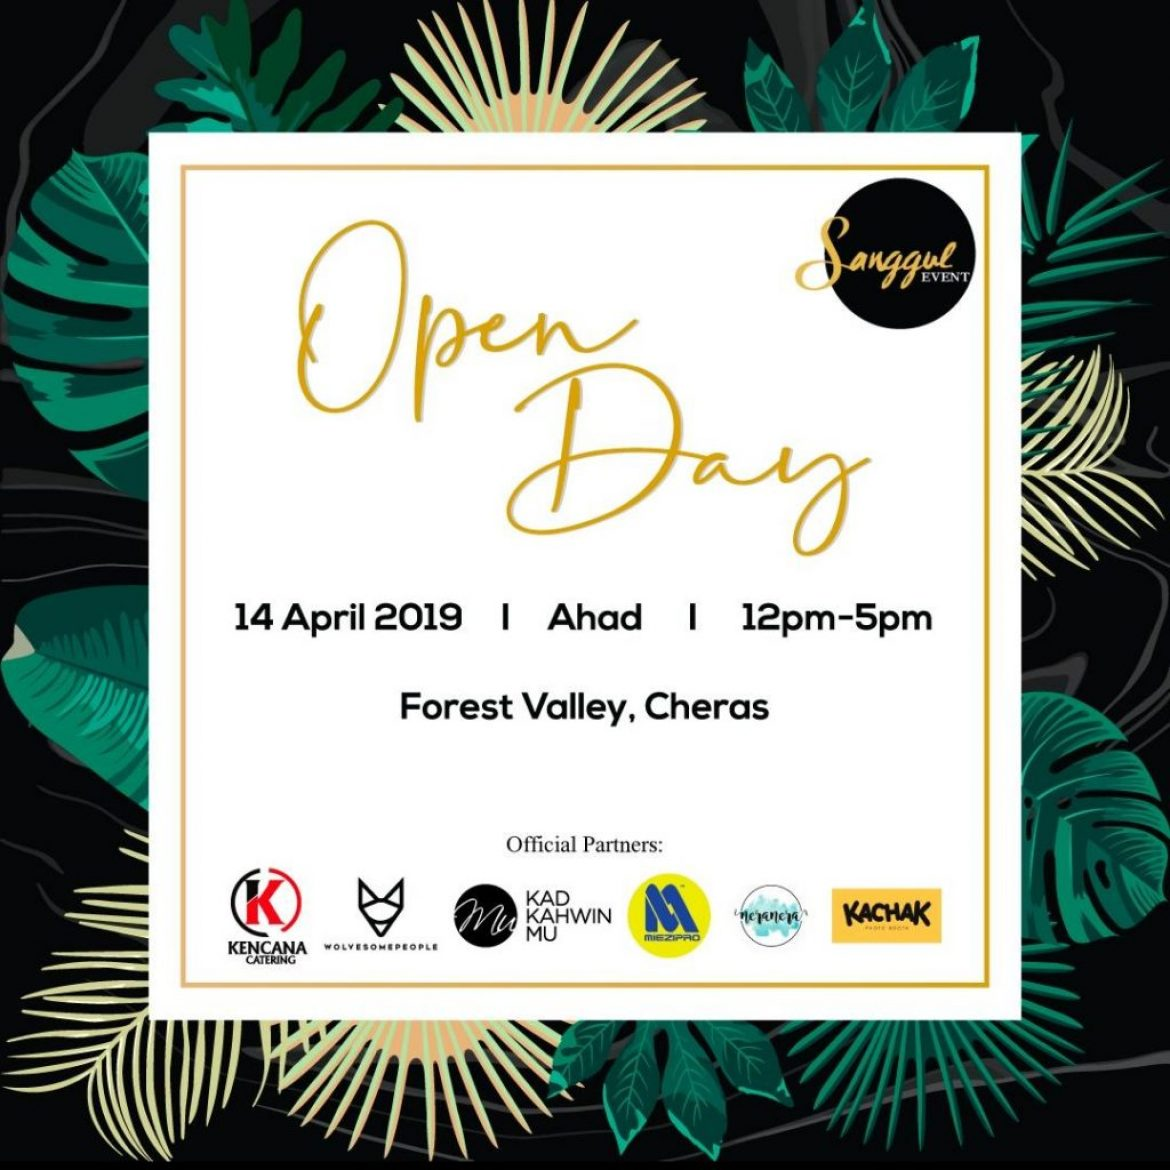 OPEN DAY SANGGUL EVENT